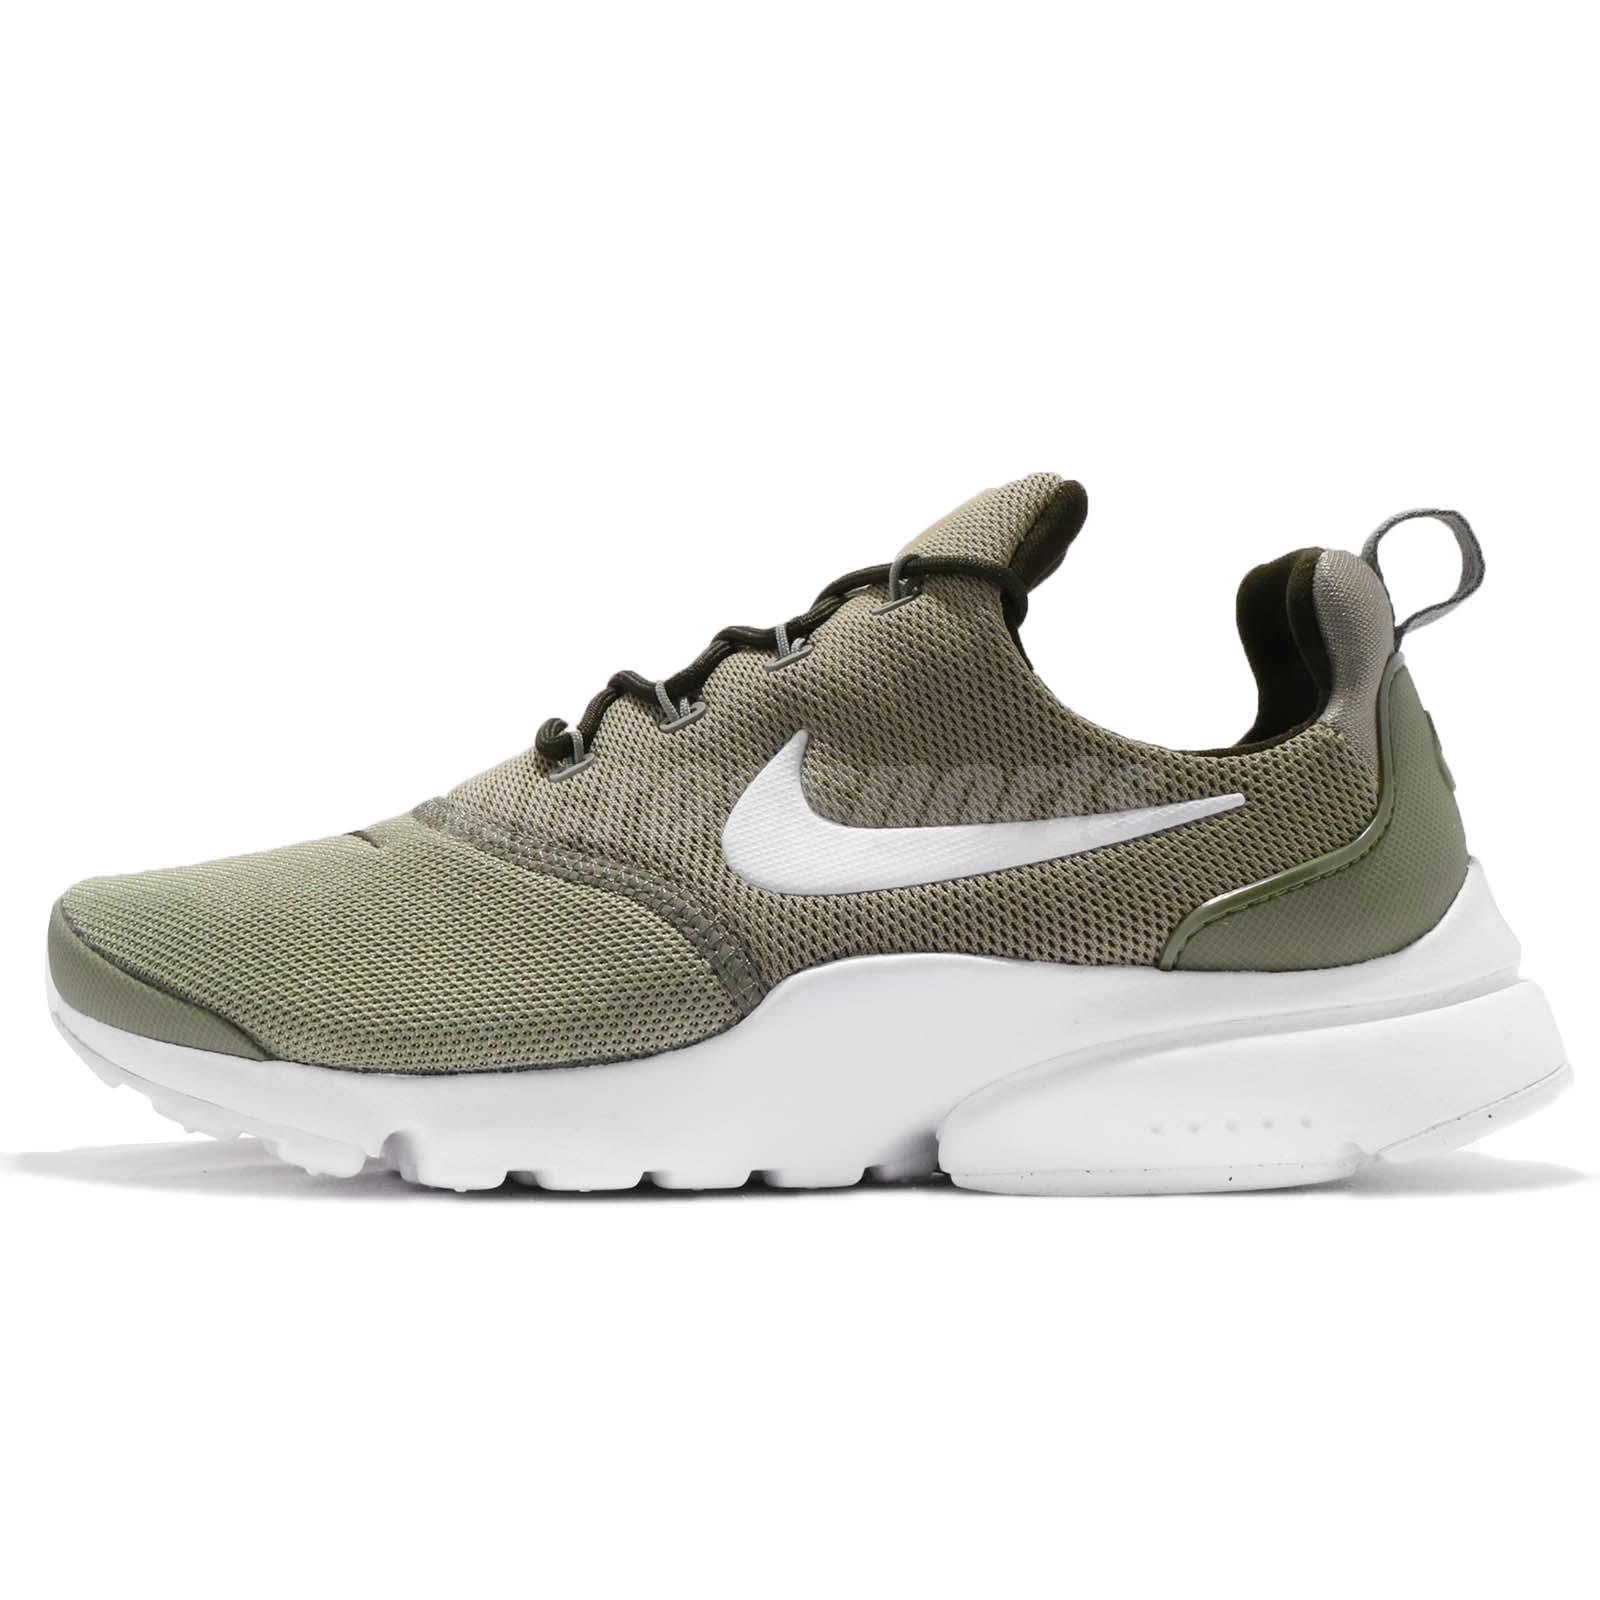 official photos b9944 1443b Details about Wmns Nike Presto Fly Dark Stucco Green Women Running Shoes  Sneakers 910569-008